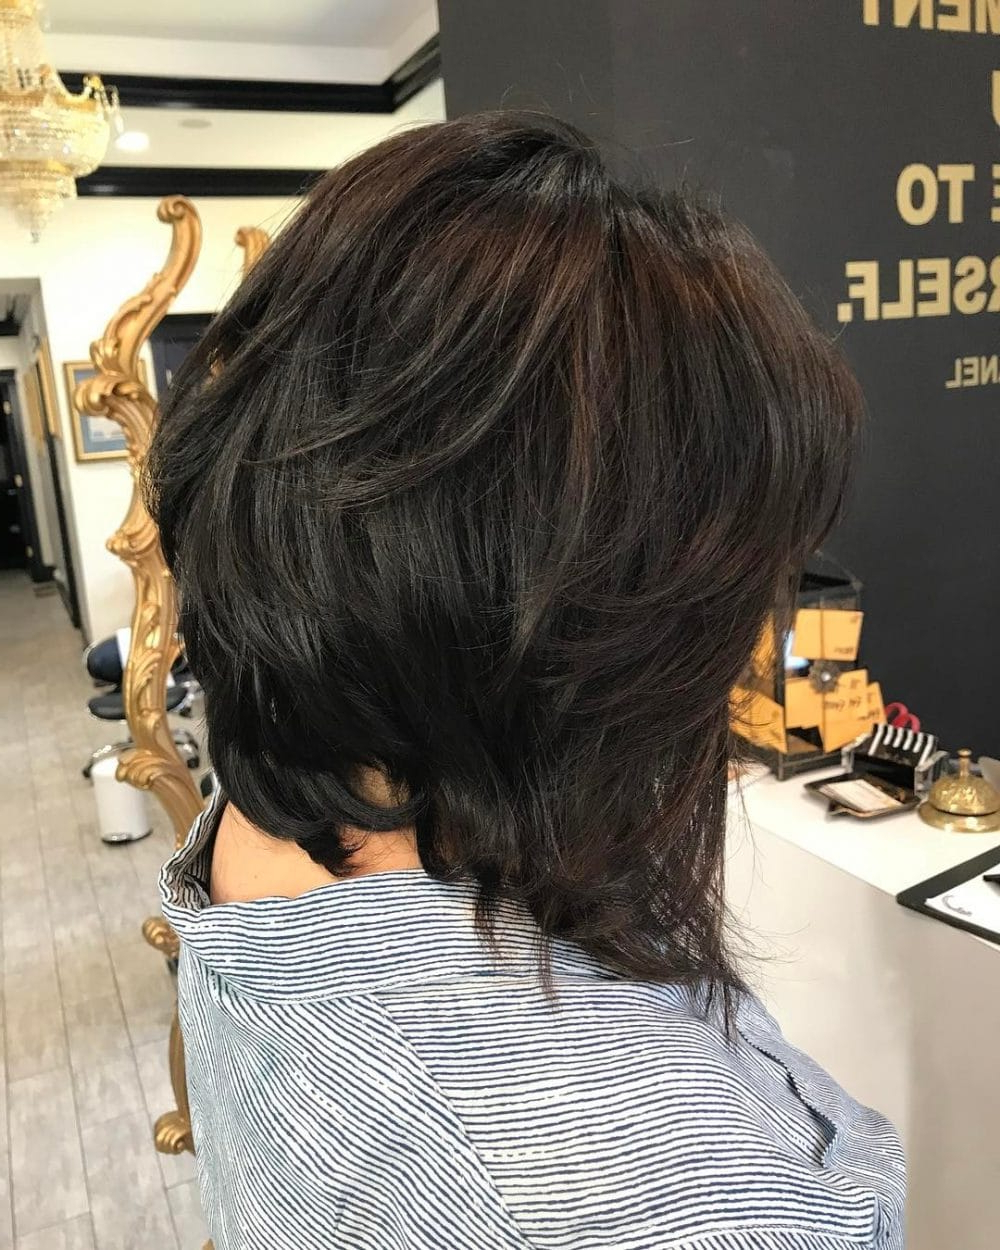 26 Modern Shag Haircuts To Try In 2019 For Fashionable Black Angled Bob Hairstyles With Shaggy Layers (View 7 of 20)